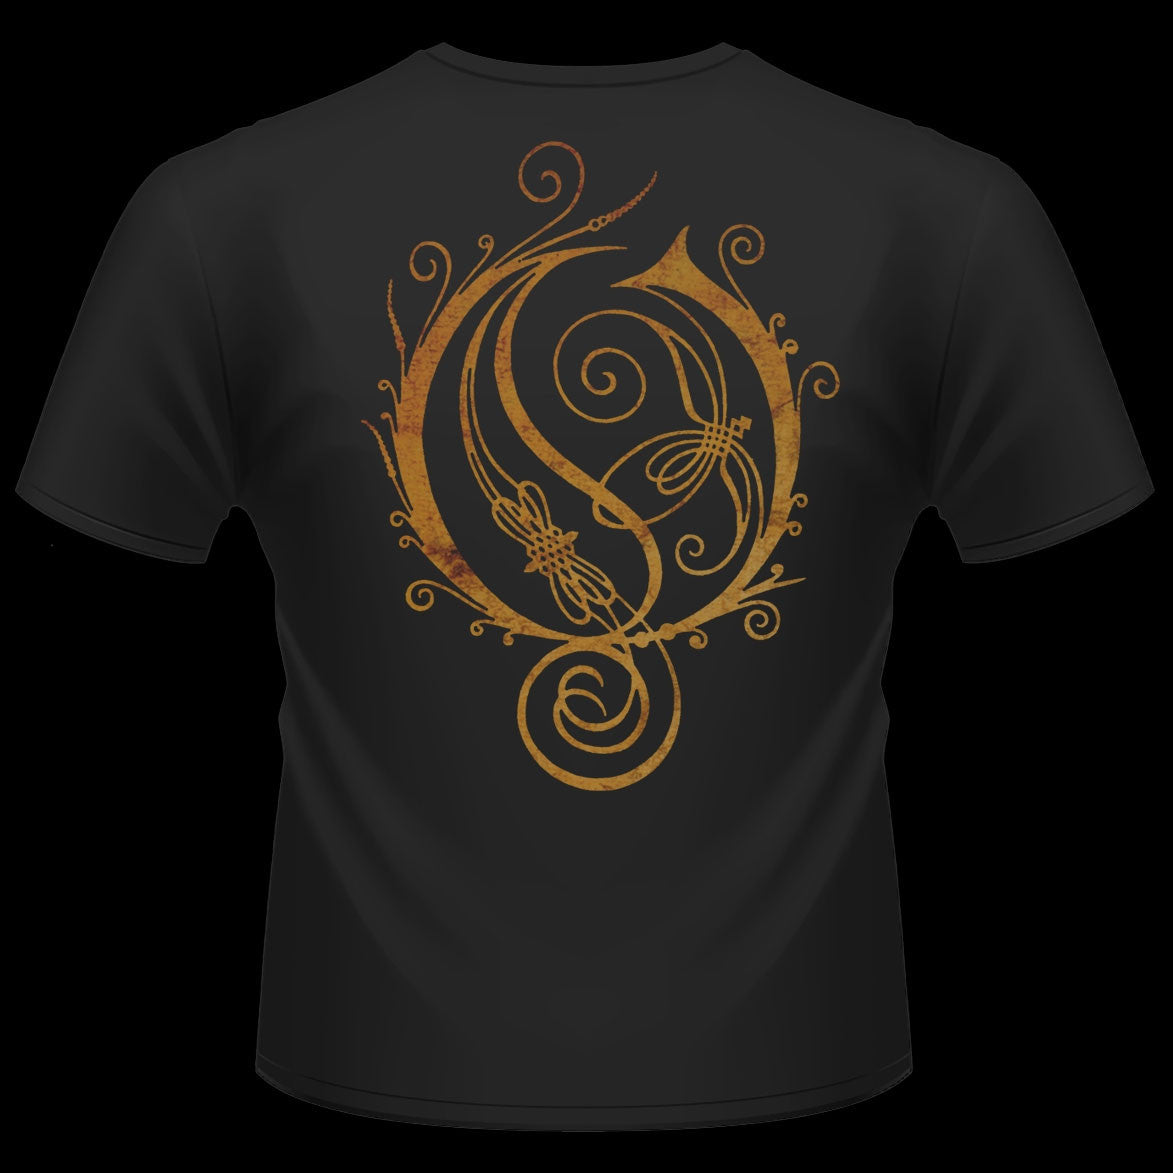 Opeth - Orchid / Orange Logo (T-Shirt)